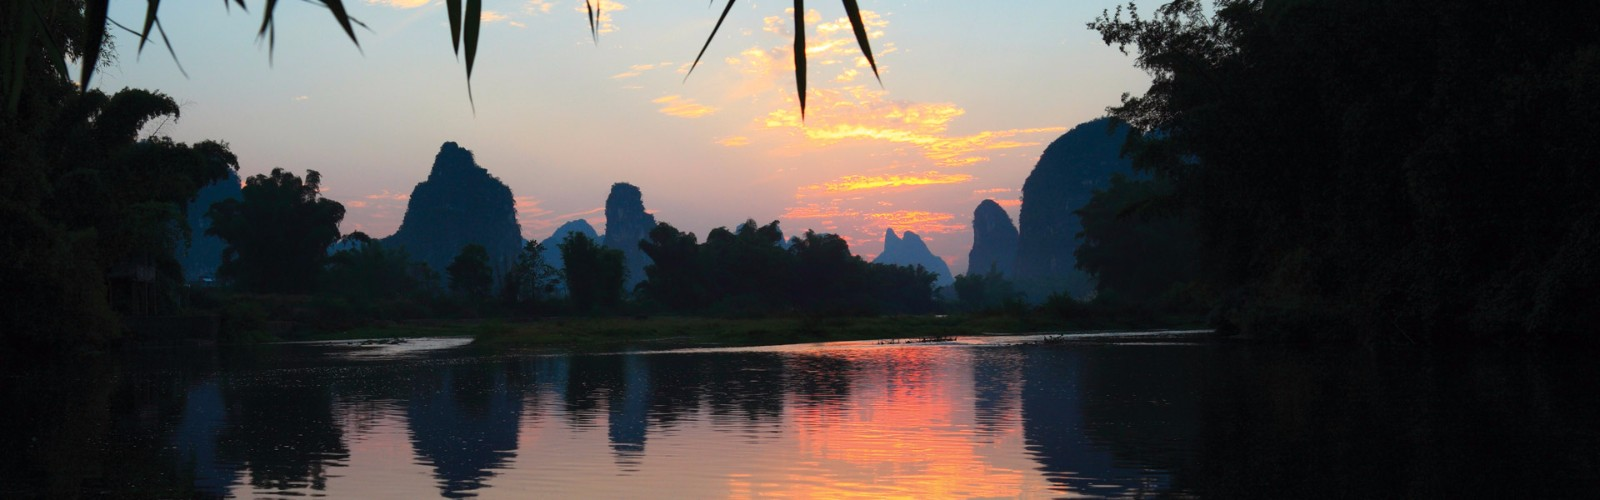 Guilin Short Stay Tour | Wendy Wu Tours